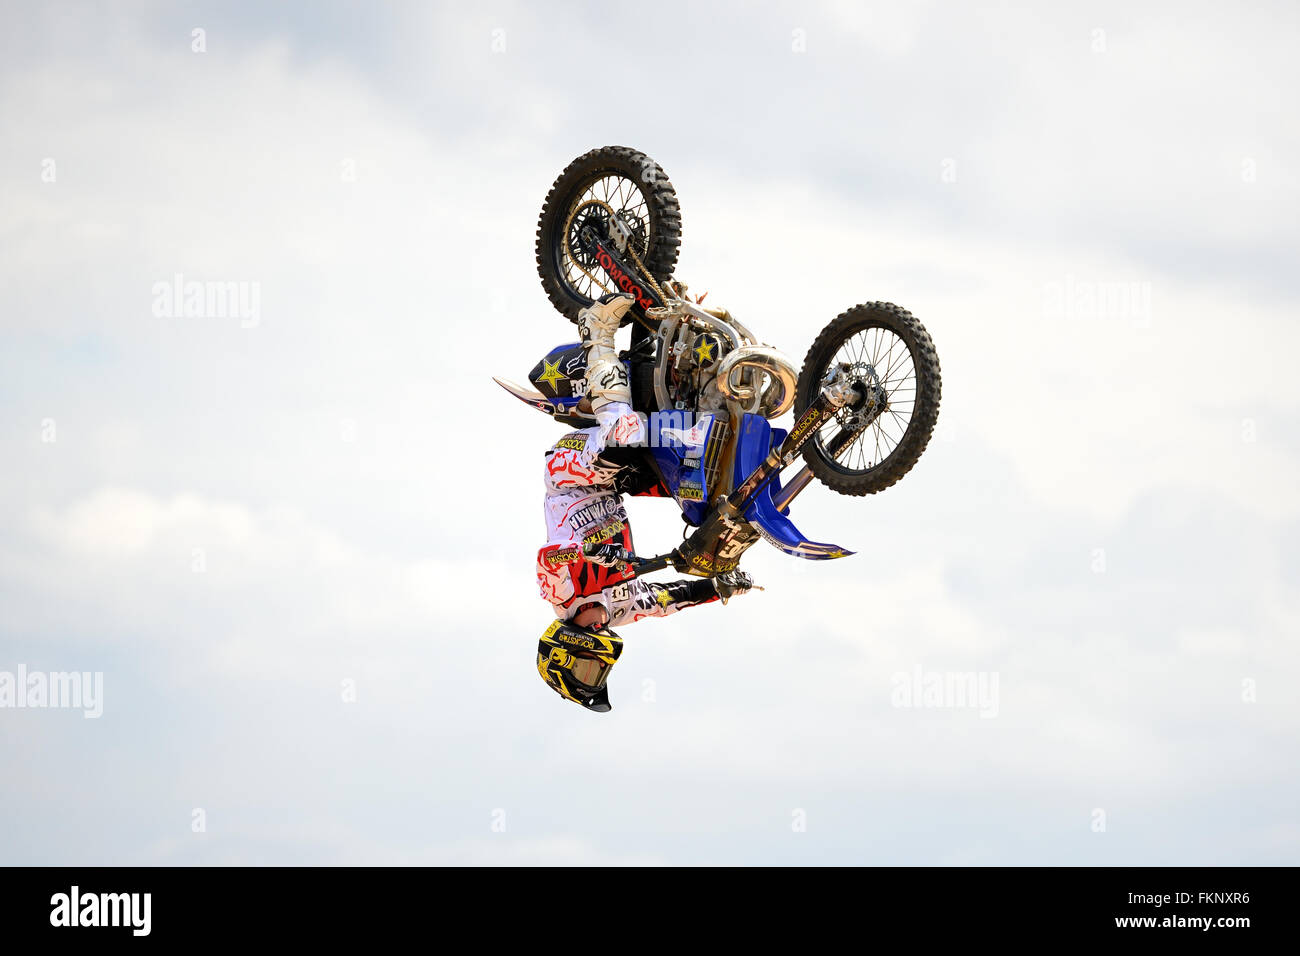 BARCELONA - JUN 28: A professional rider at the FMX (Freestyle Motocross) competition at LKXA Extreme Sports Barcelona. - Stock Image